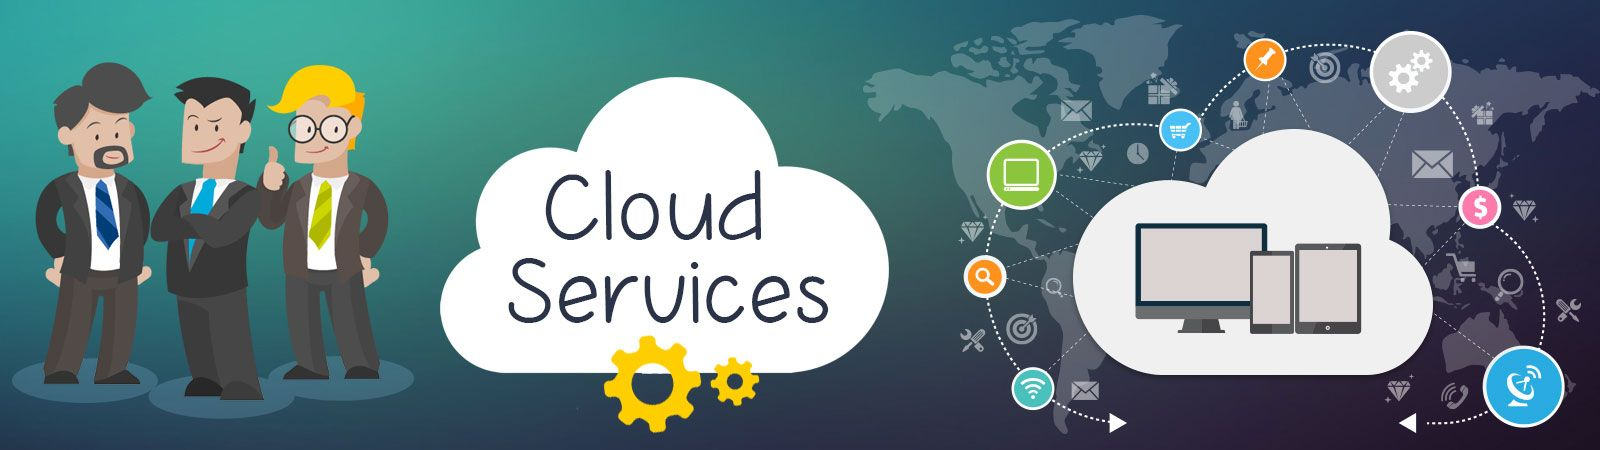 Top 10 Things to Know Before Choosing Cloud Service Provider